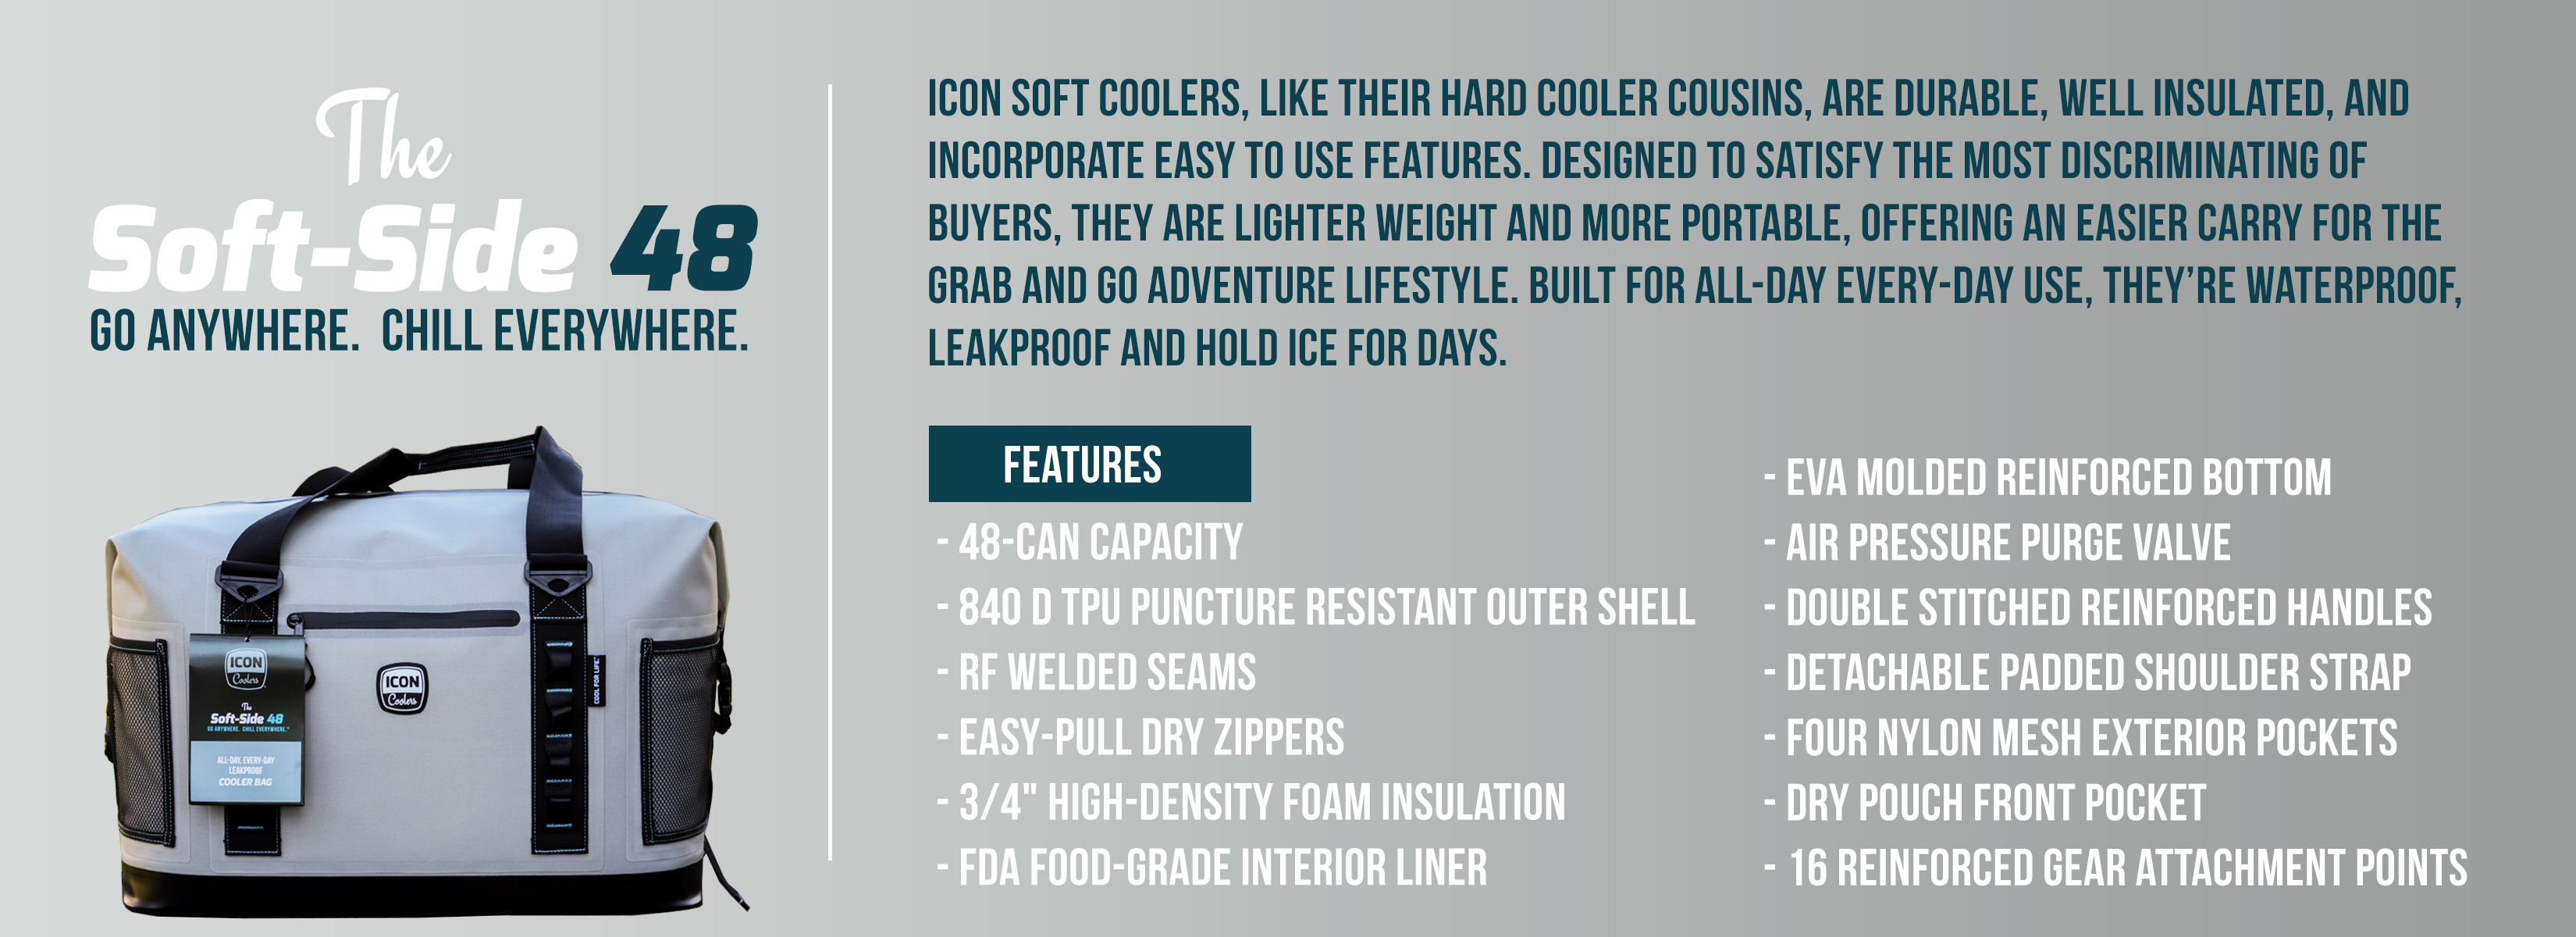 icon-soft-cooler-48-subcat-header.jpg